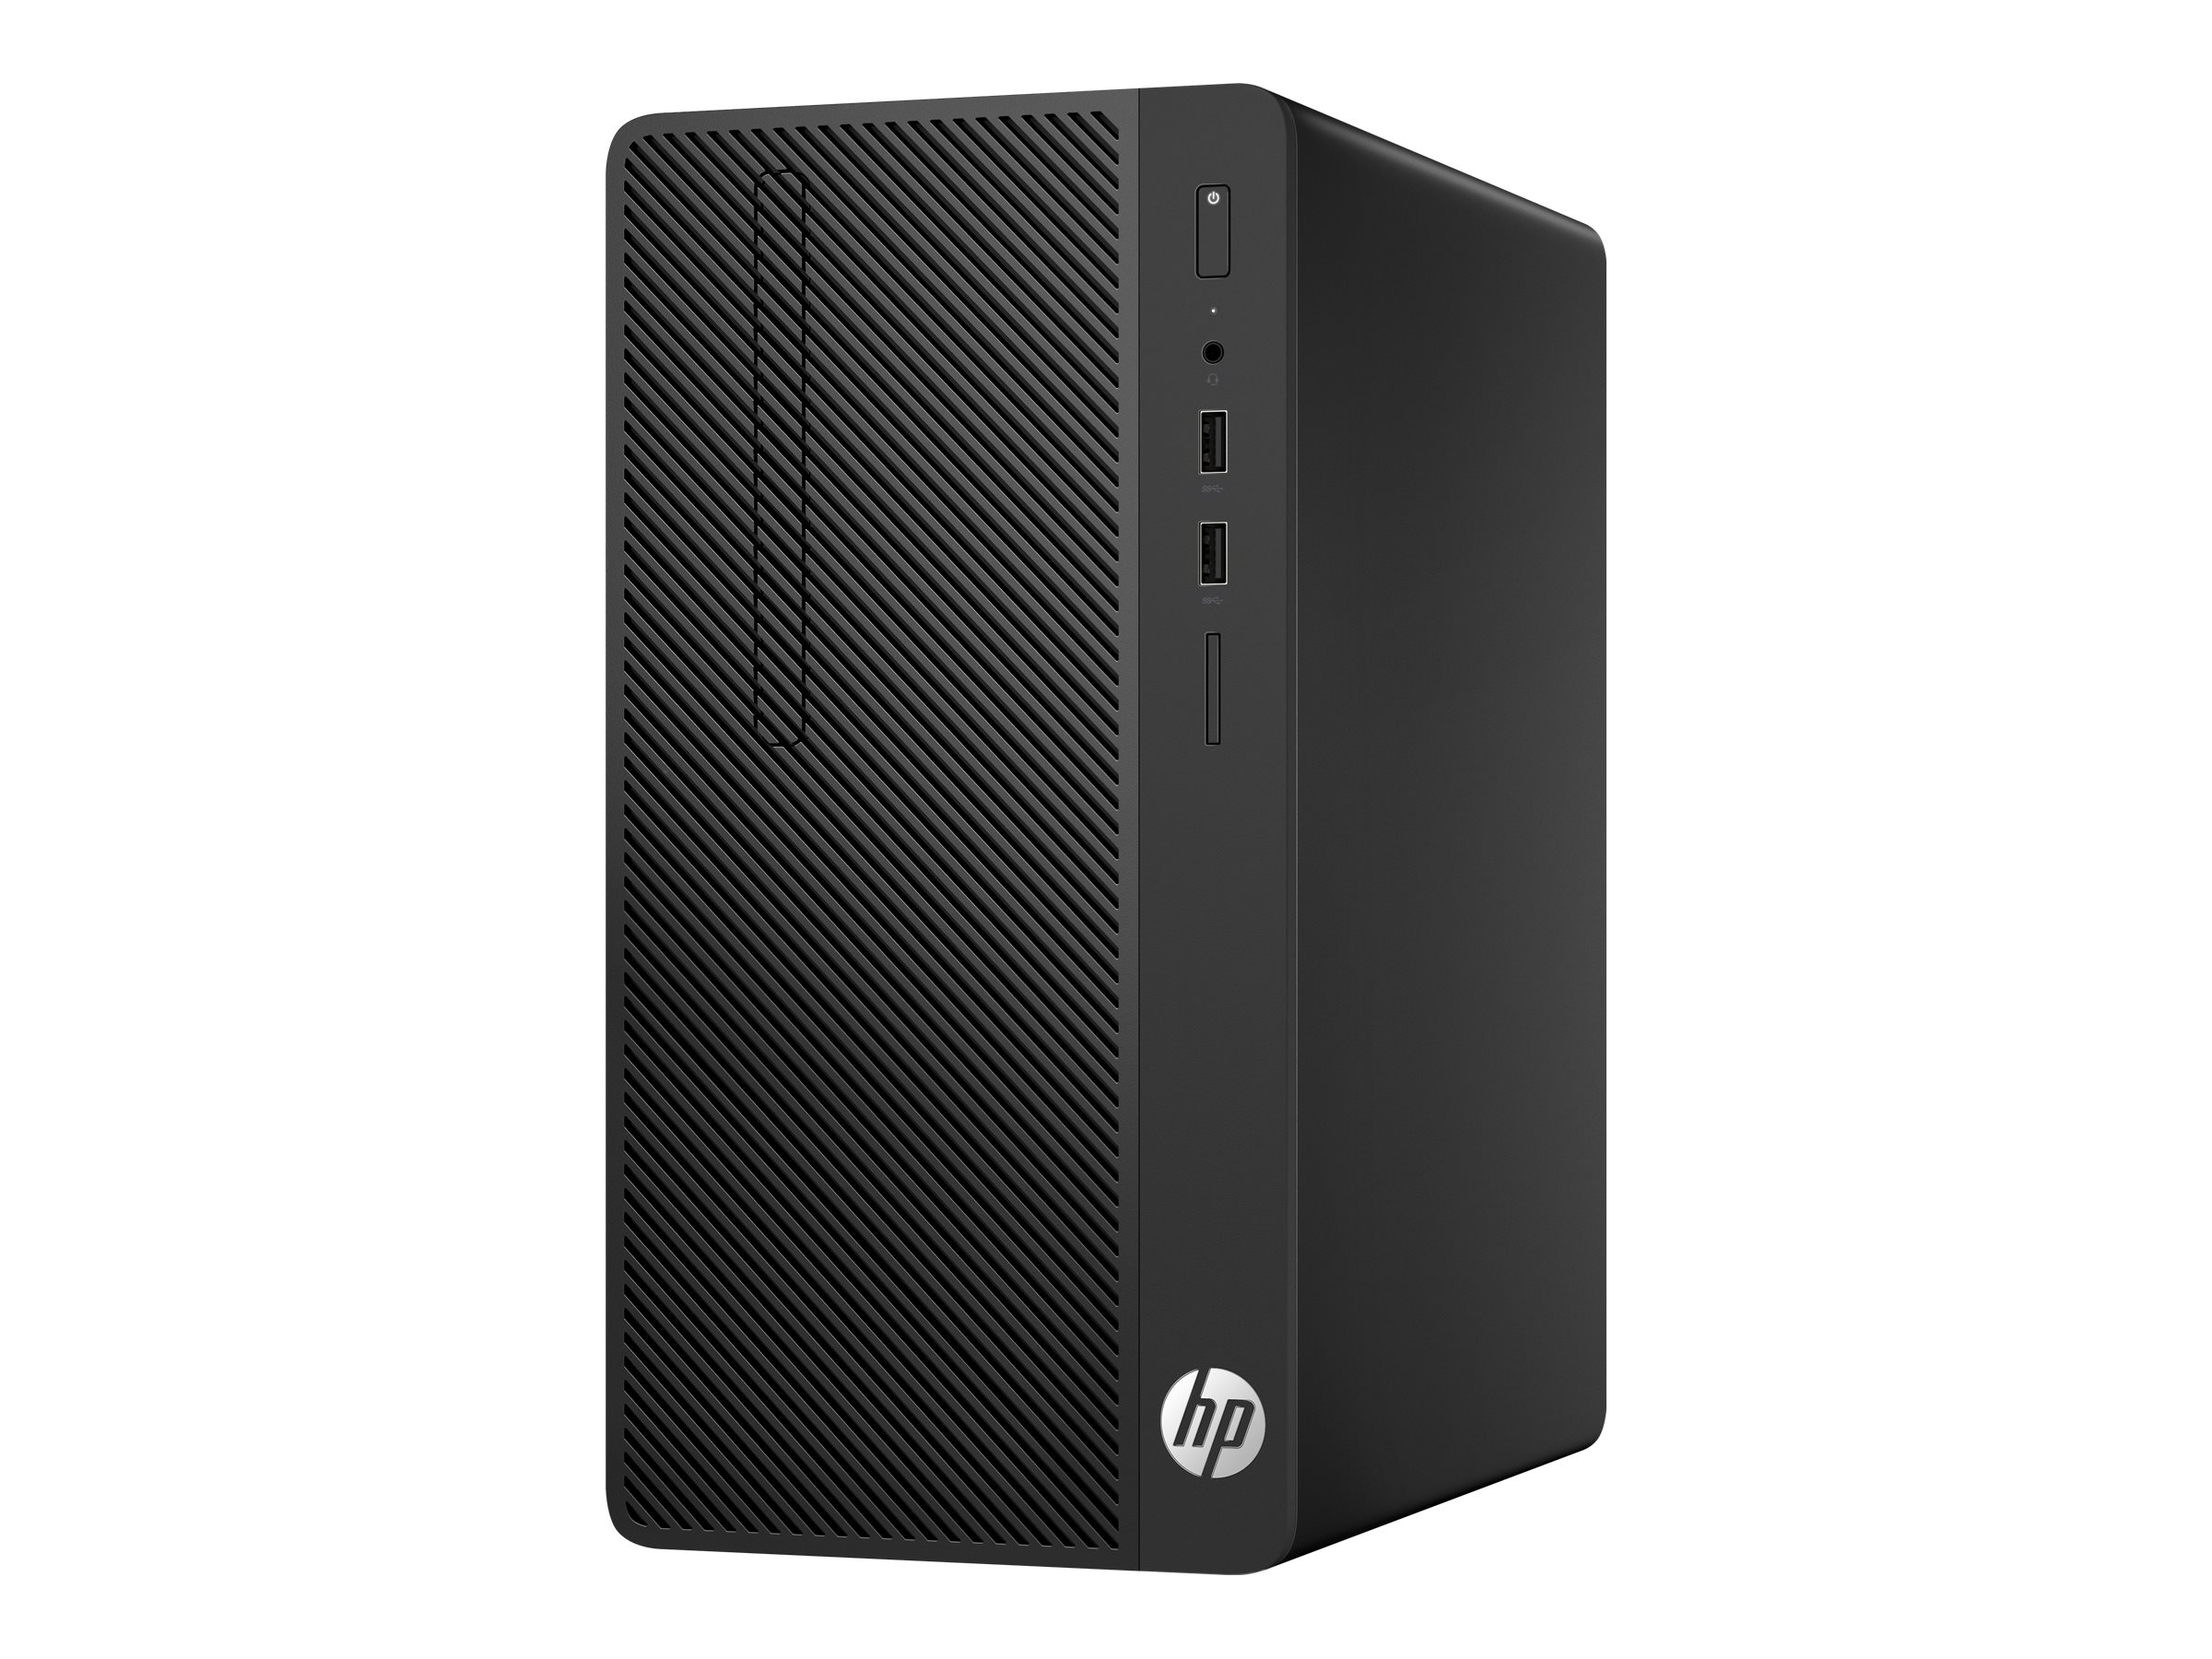 Hp 285 g3 micro tower 1 x ryzen 3 2200g 3 5 ghz ram 8 gb hdd 1 tb dvd writer 8955894 3zd61ea abd